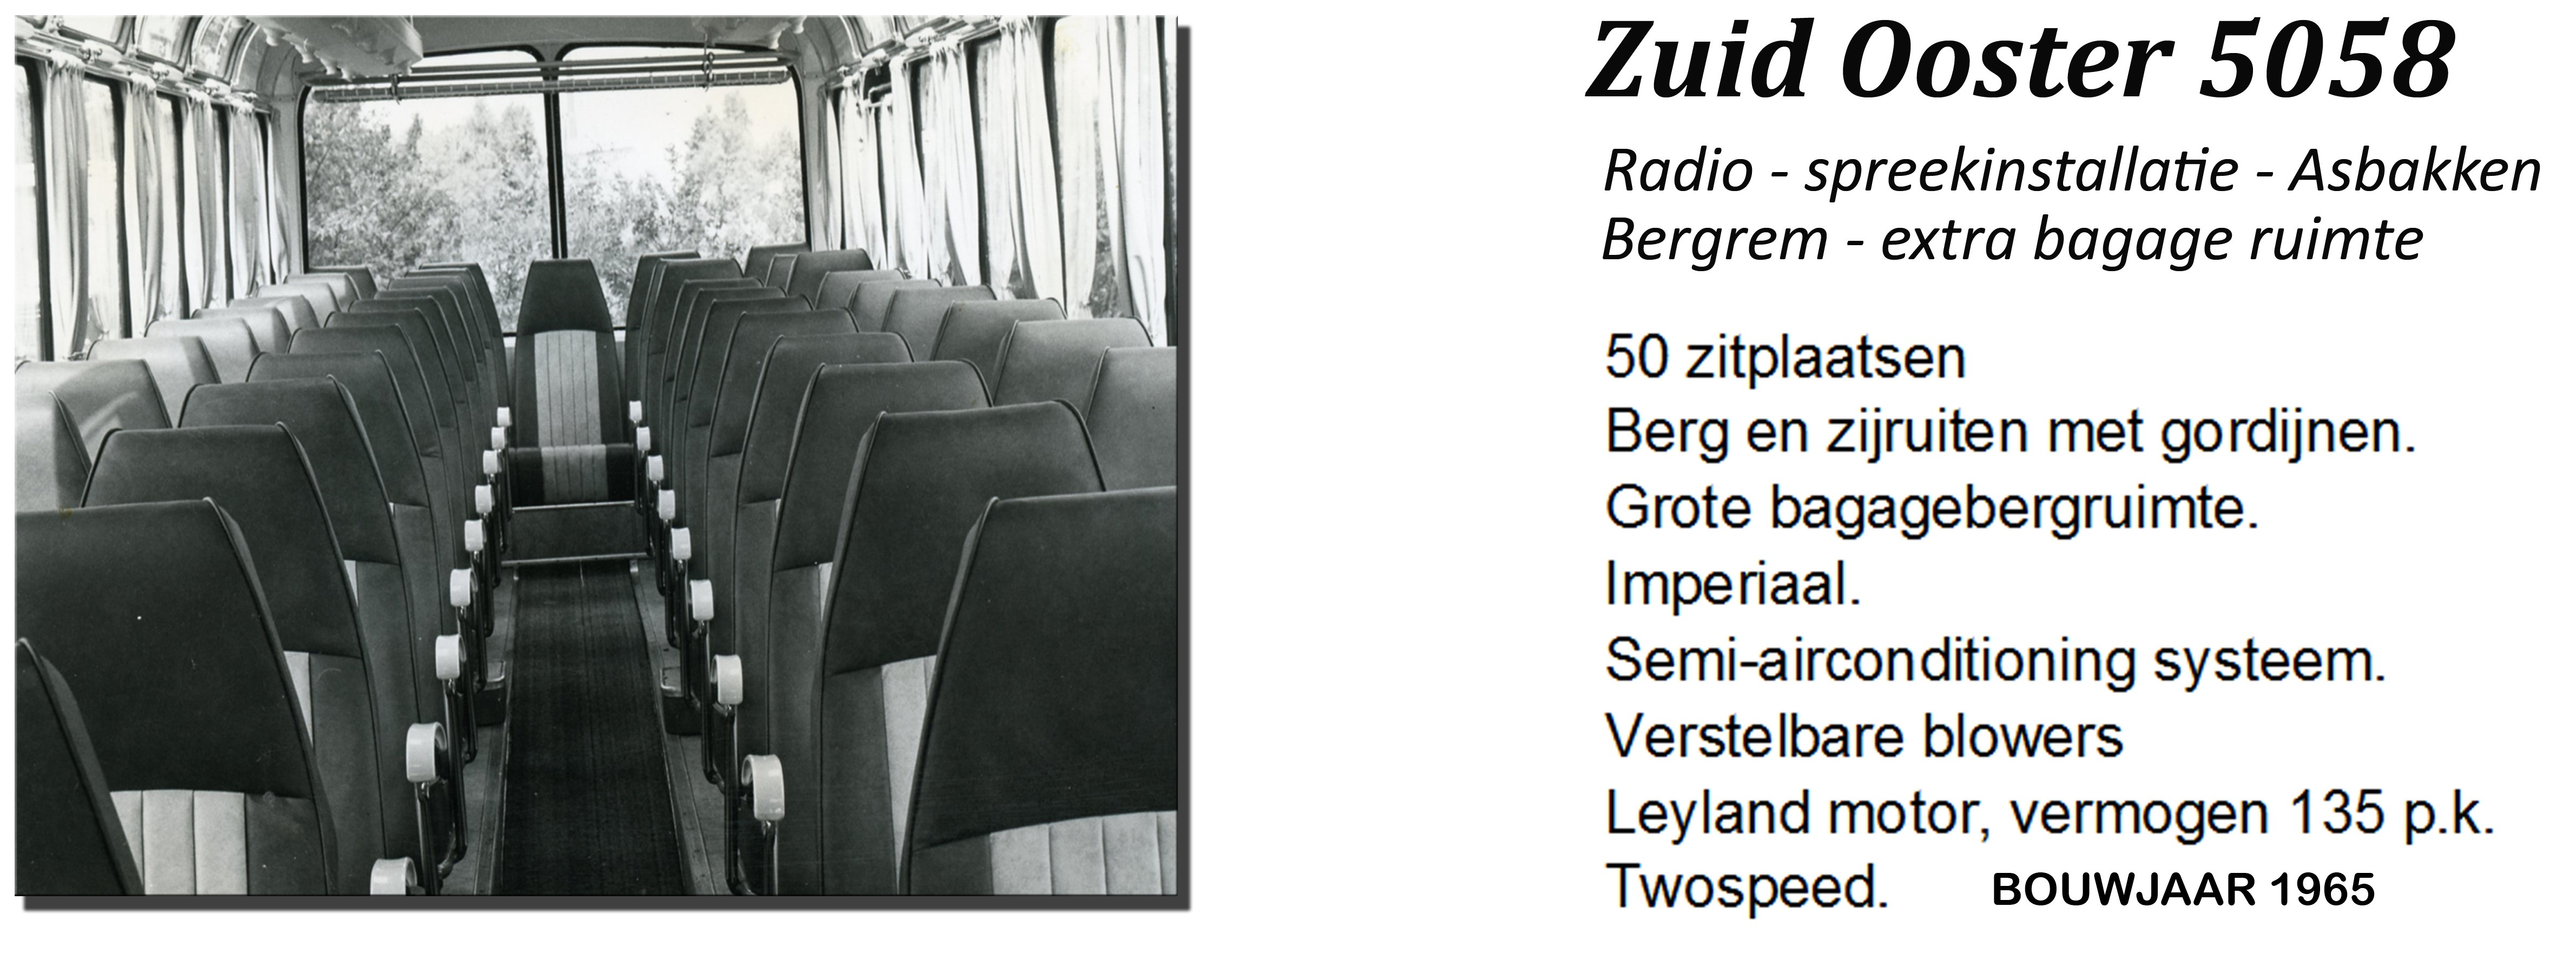 5058-Zuid-Ooster-2